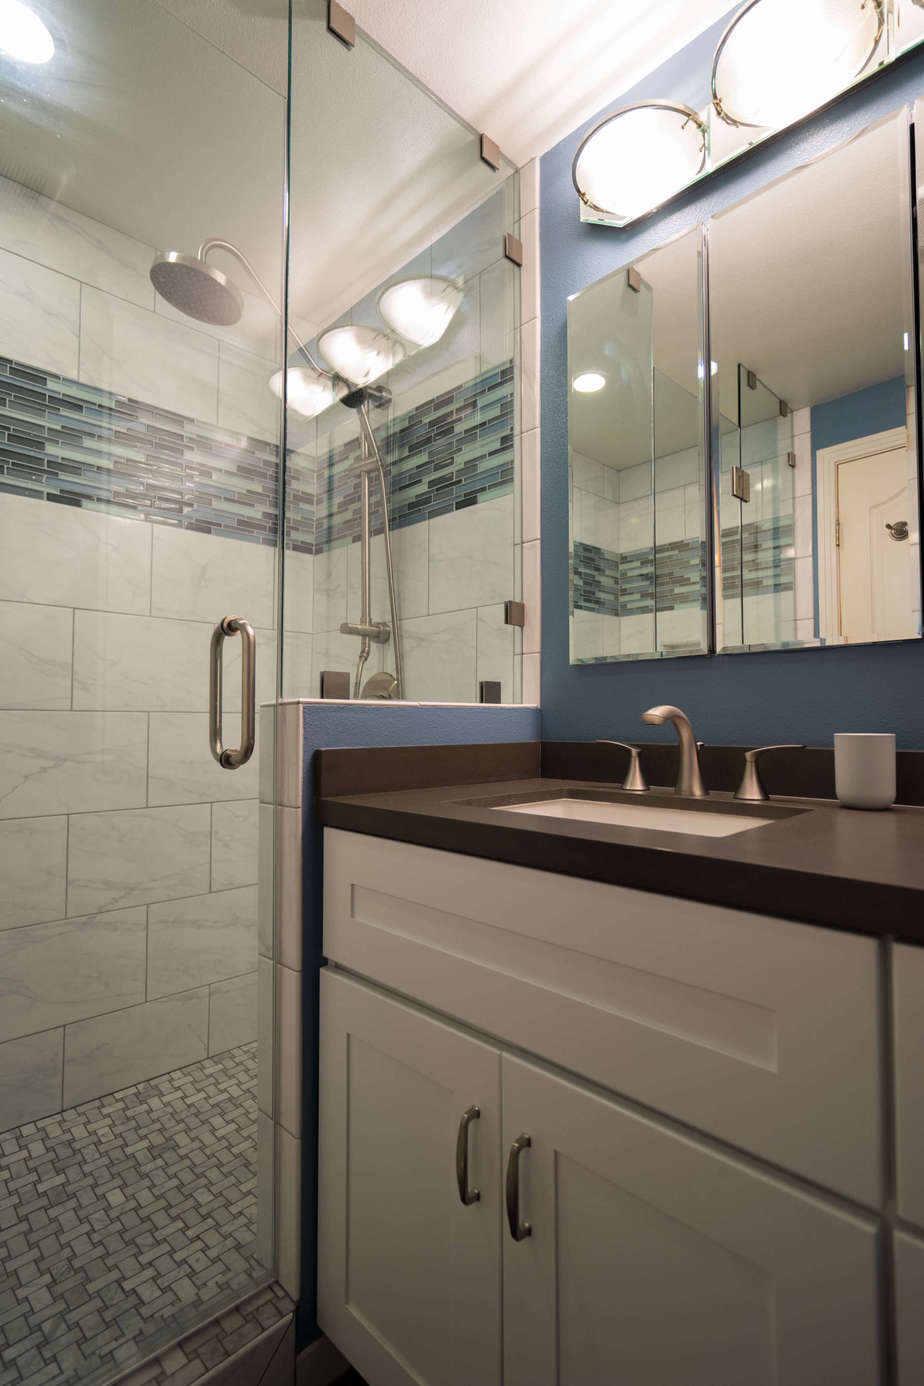 Bathroom Remodeling University bathroom remodel university city - classic home improvements